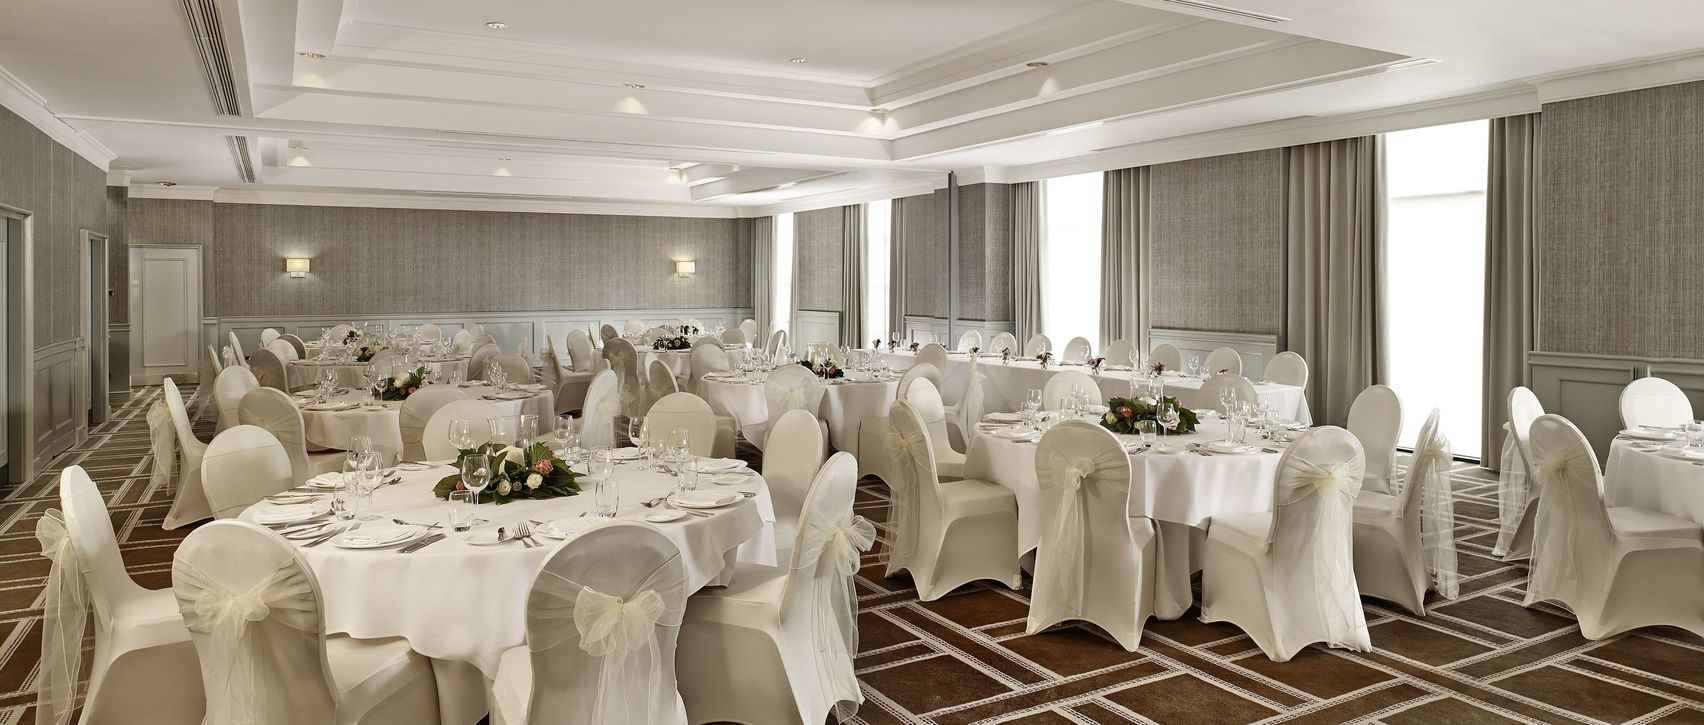 The Symphony Room, Hyatt Regency Birmingham